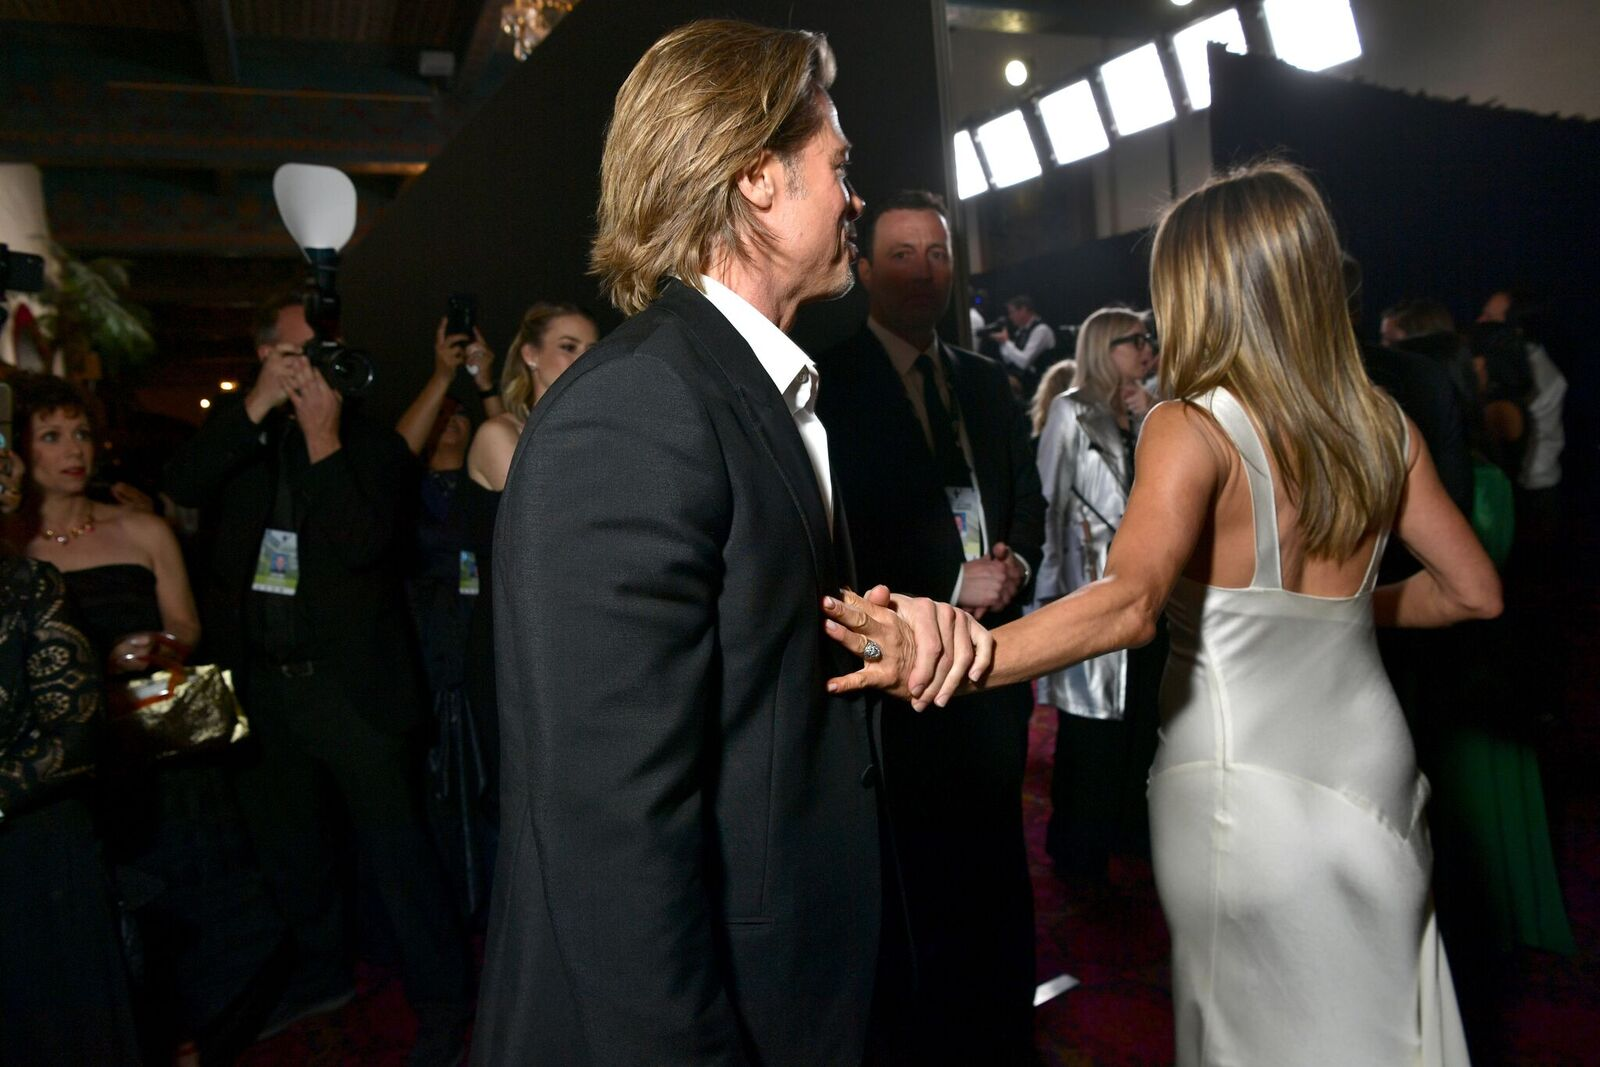 Brad Pitt and Jennifer Aniston at the 26th Annual Screen ActorsGuild Awards on January 19, 2020, in Los Angeles, California   Photo: Emma McIntyre/Getty Images